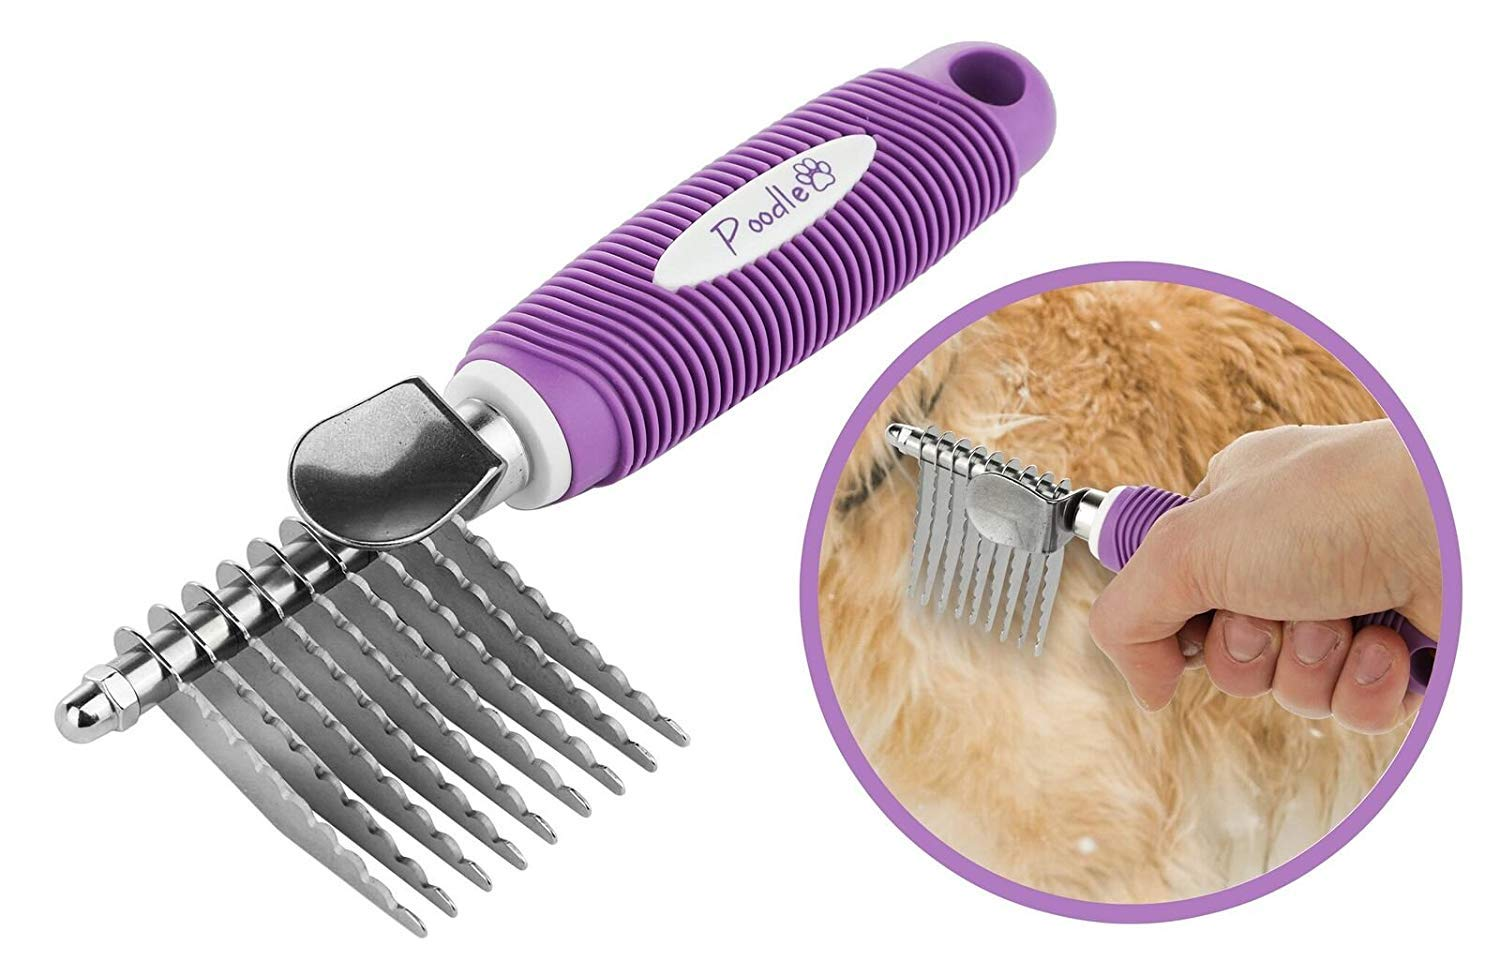 Poodle Pet Dematting Fur Rake Comb Brush Tool - with Long 2.5'' Steel Safety Blades for Detangling Matted or Knotted Undercoat Hair, Safe Grooming Accessories for Dogs, Longhaired Cats, Rabbits, Horses by Poodle Pet